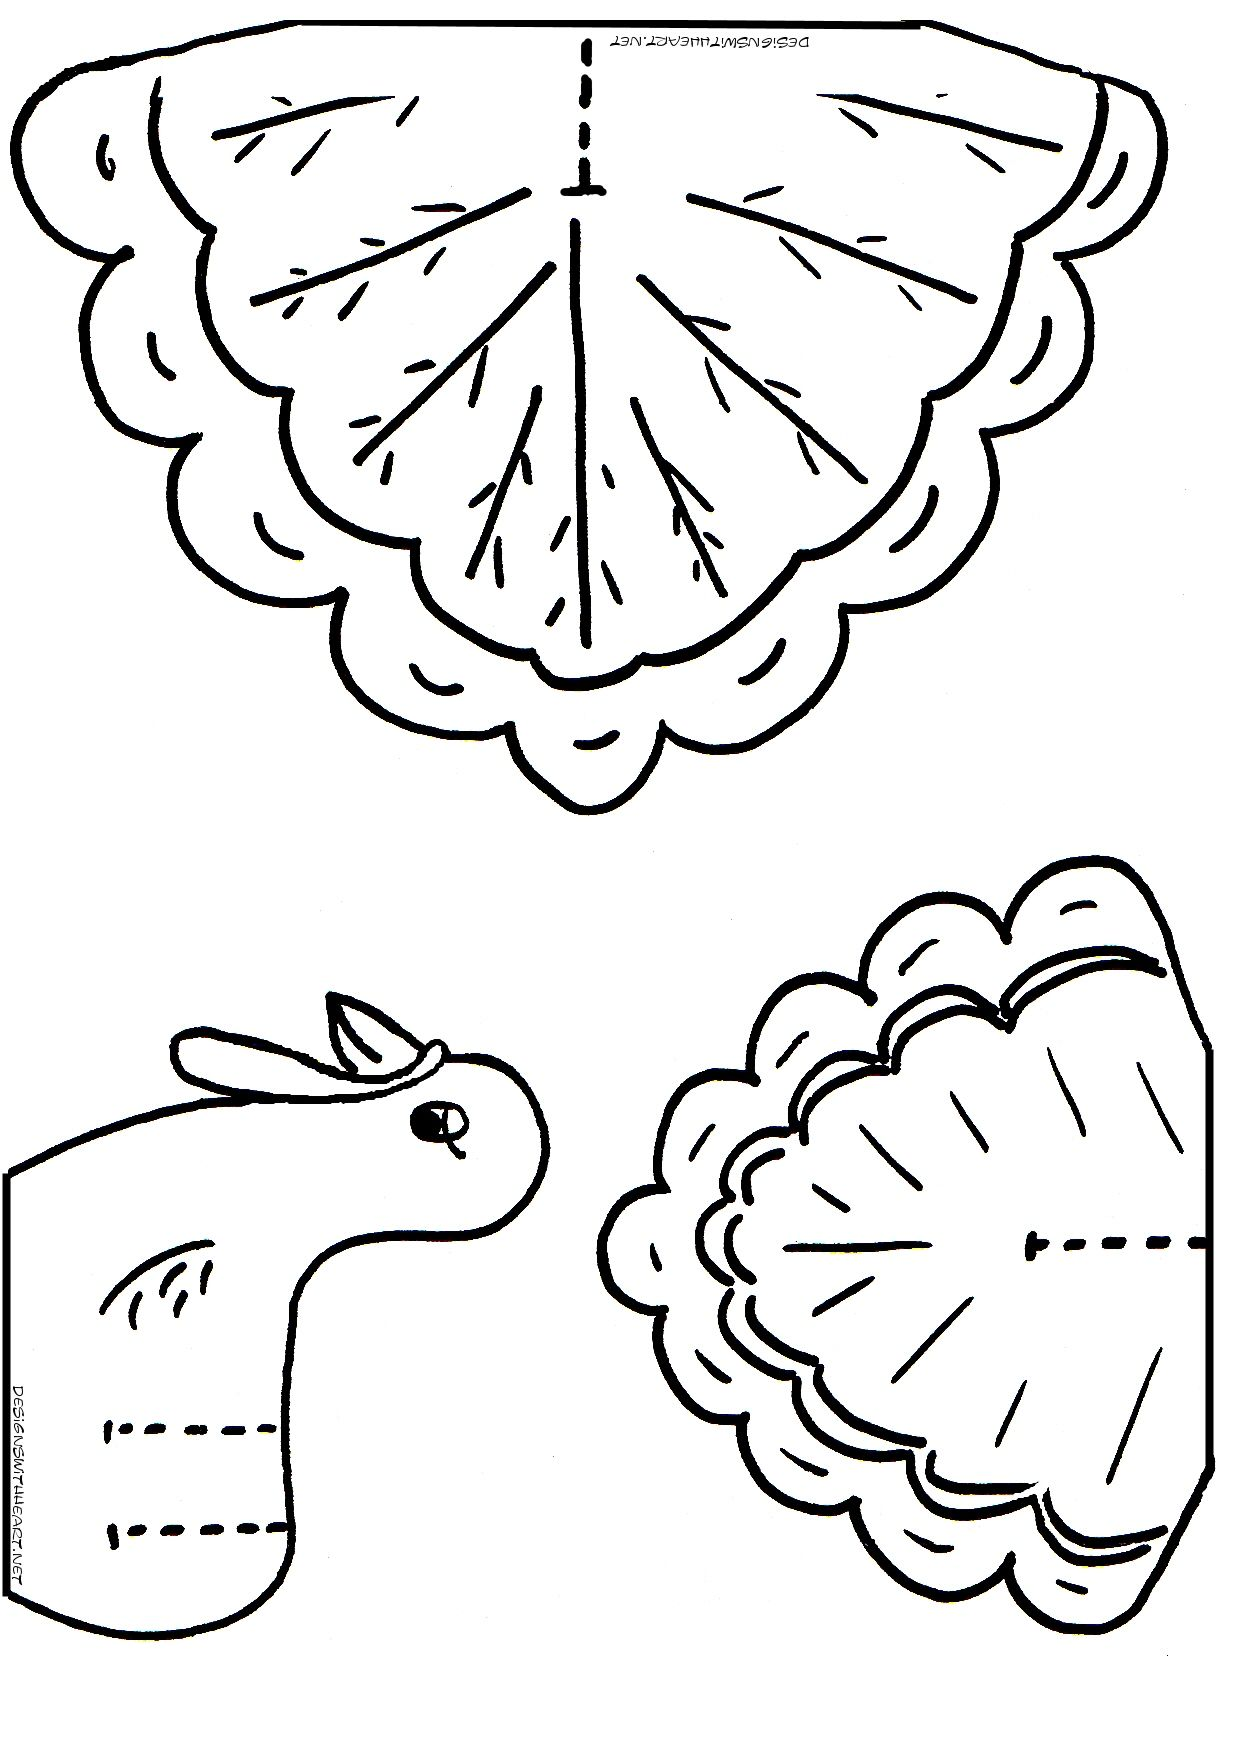 Dltk Printable Christmas Coloring Pages With Turkey Cutouts For Kids Thanksgiving Crafts